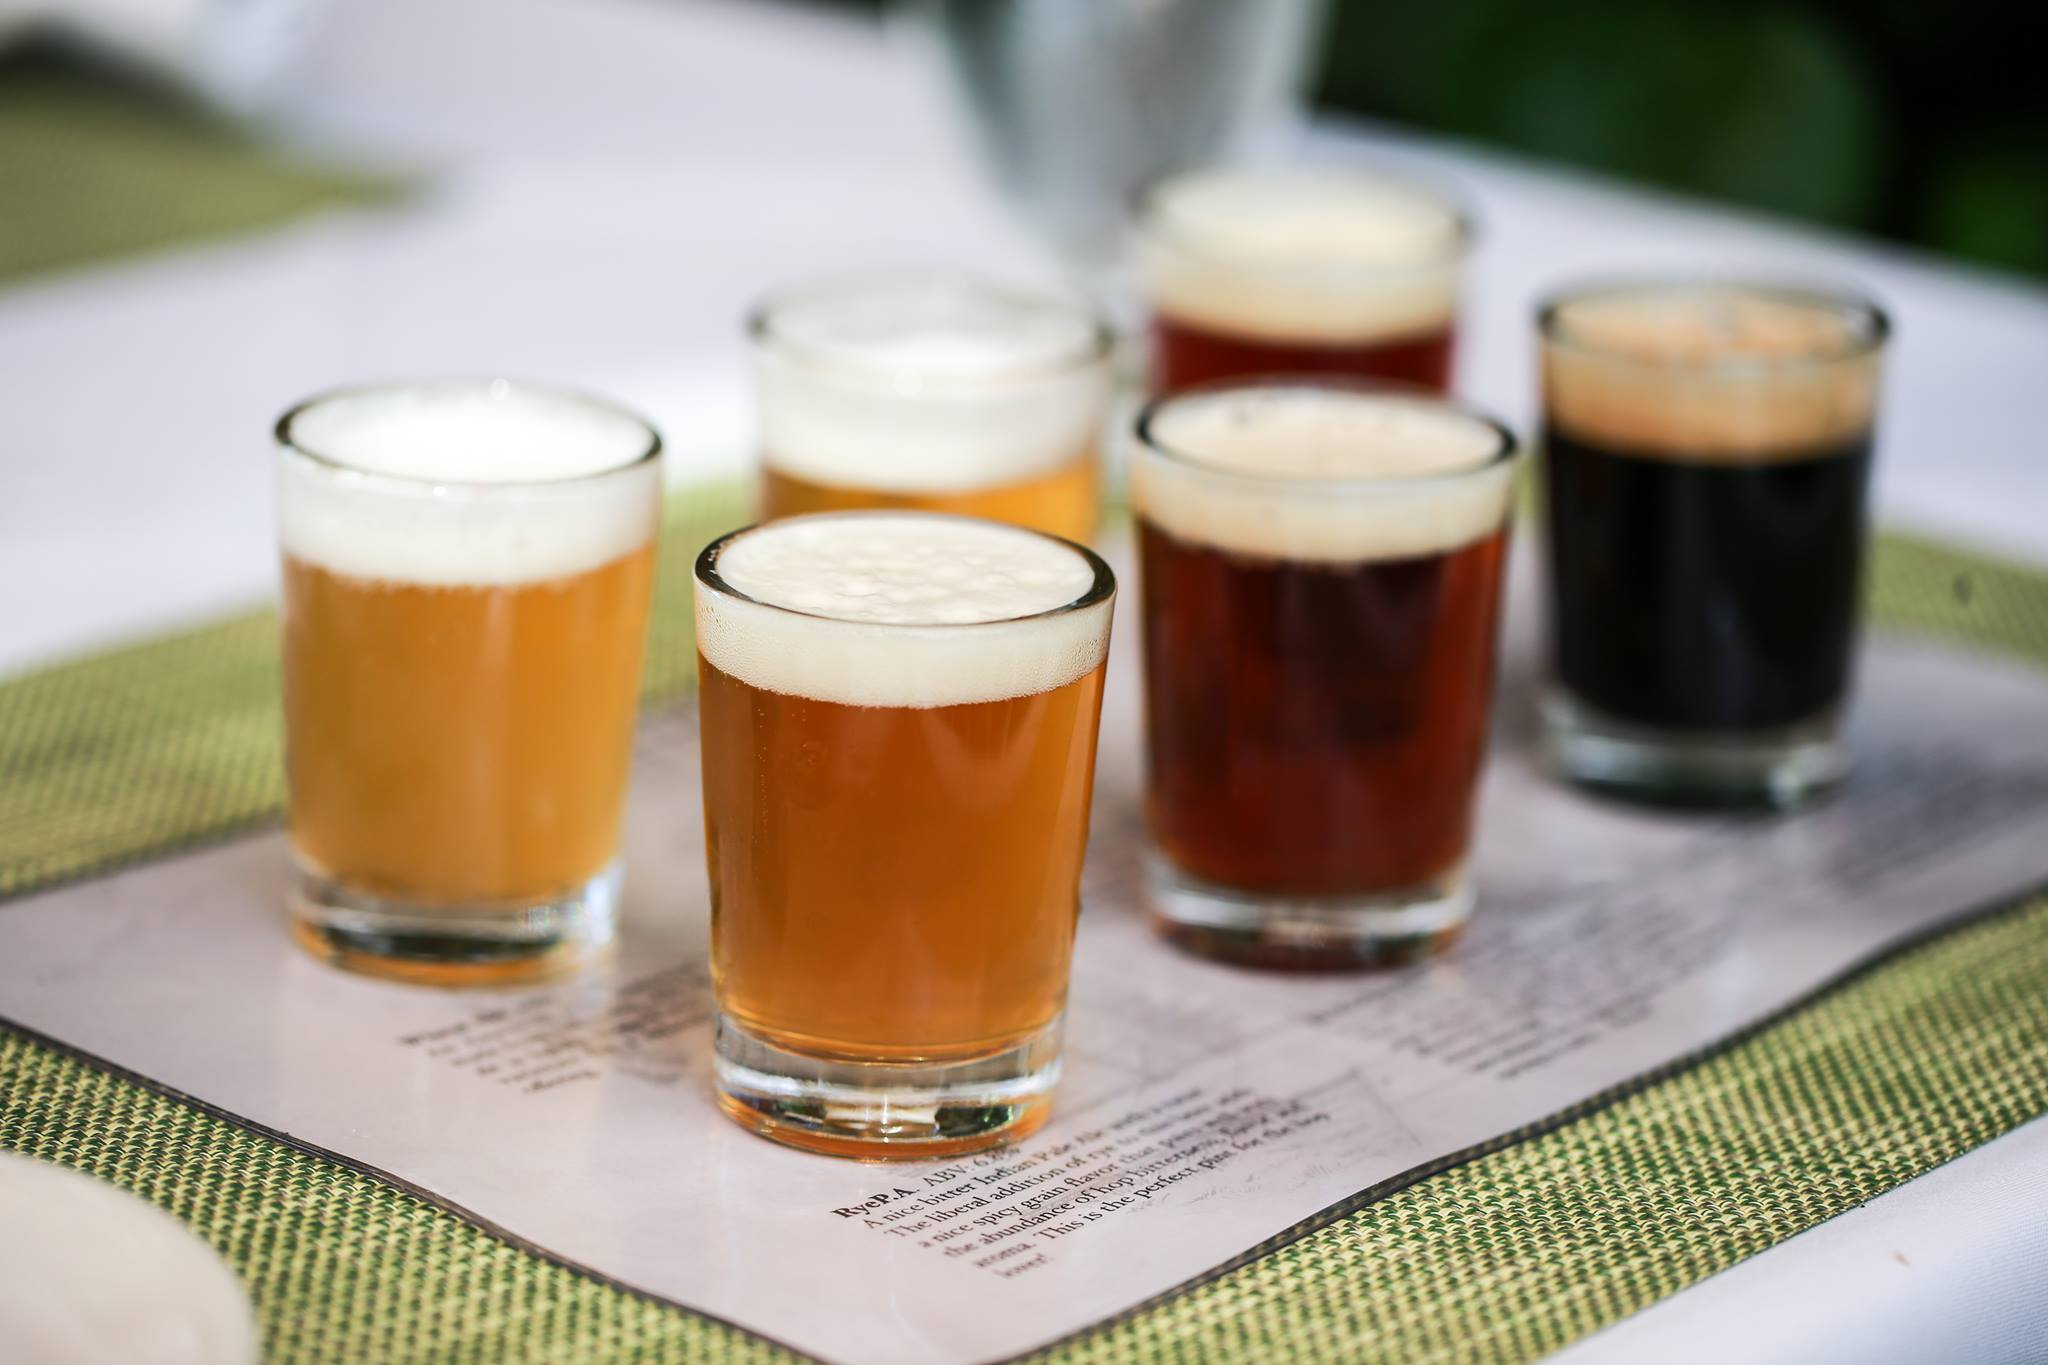 A Tasting Sample at Calistoga Inn of Napa Valley Brewing Company